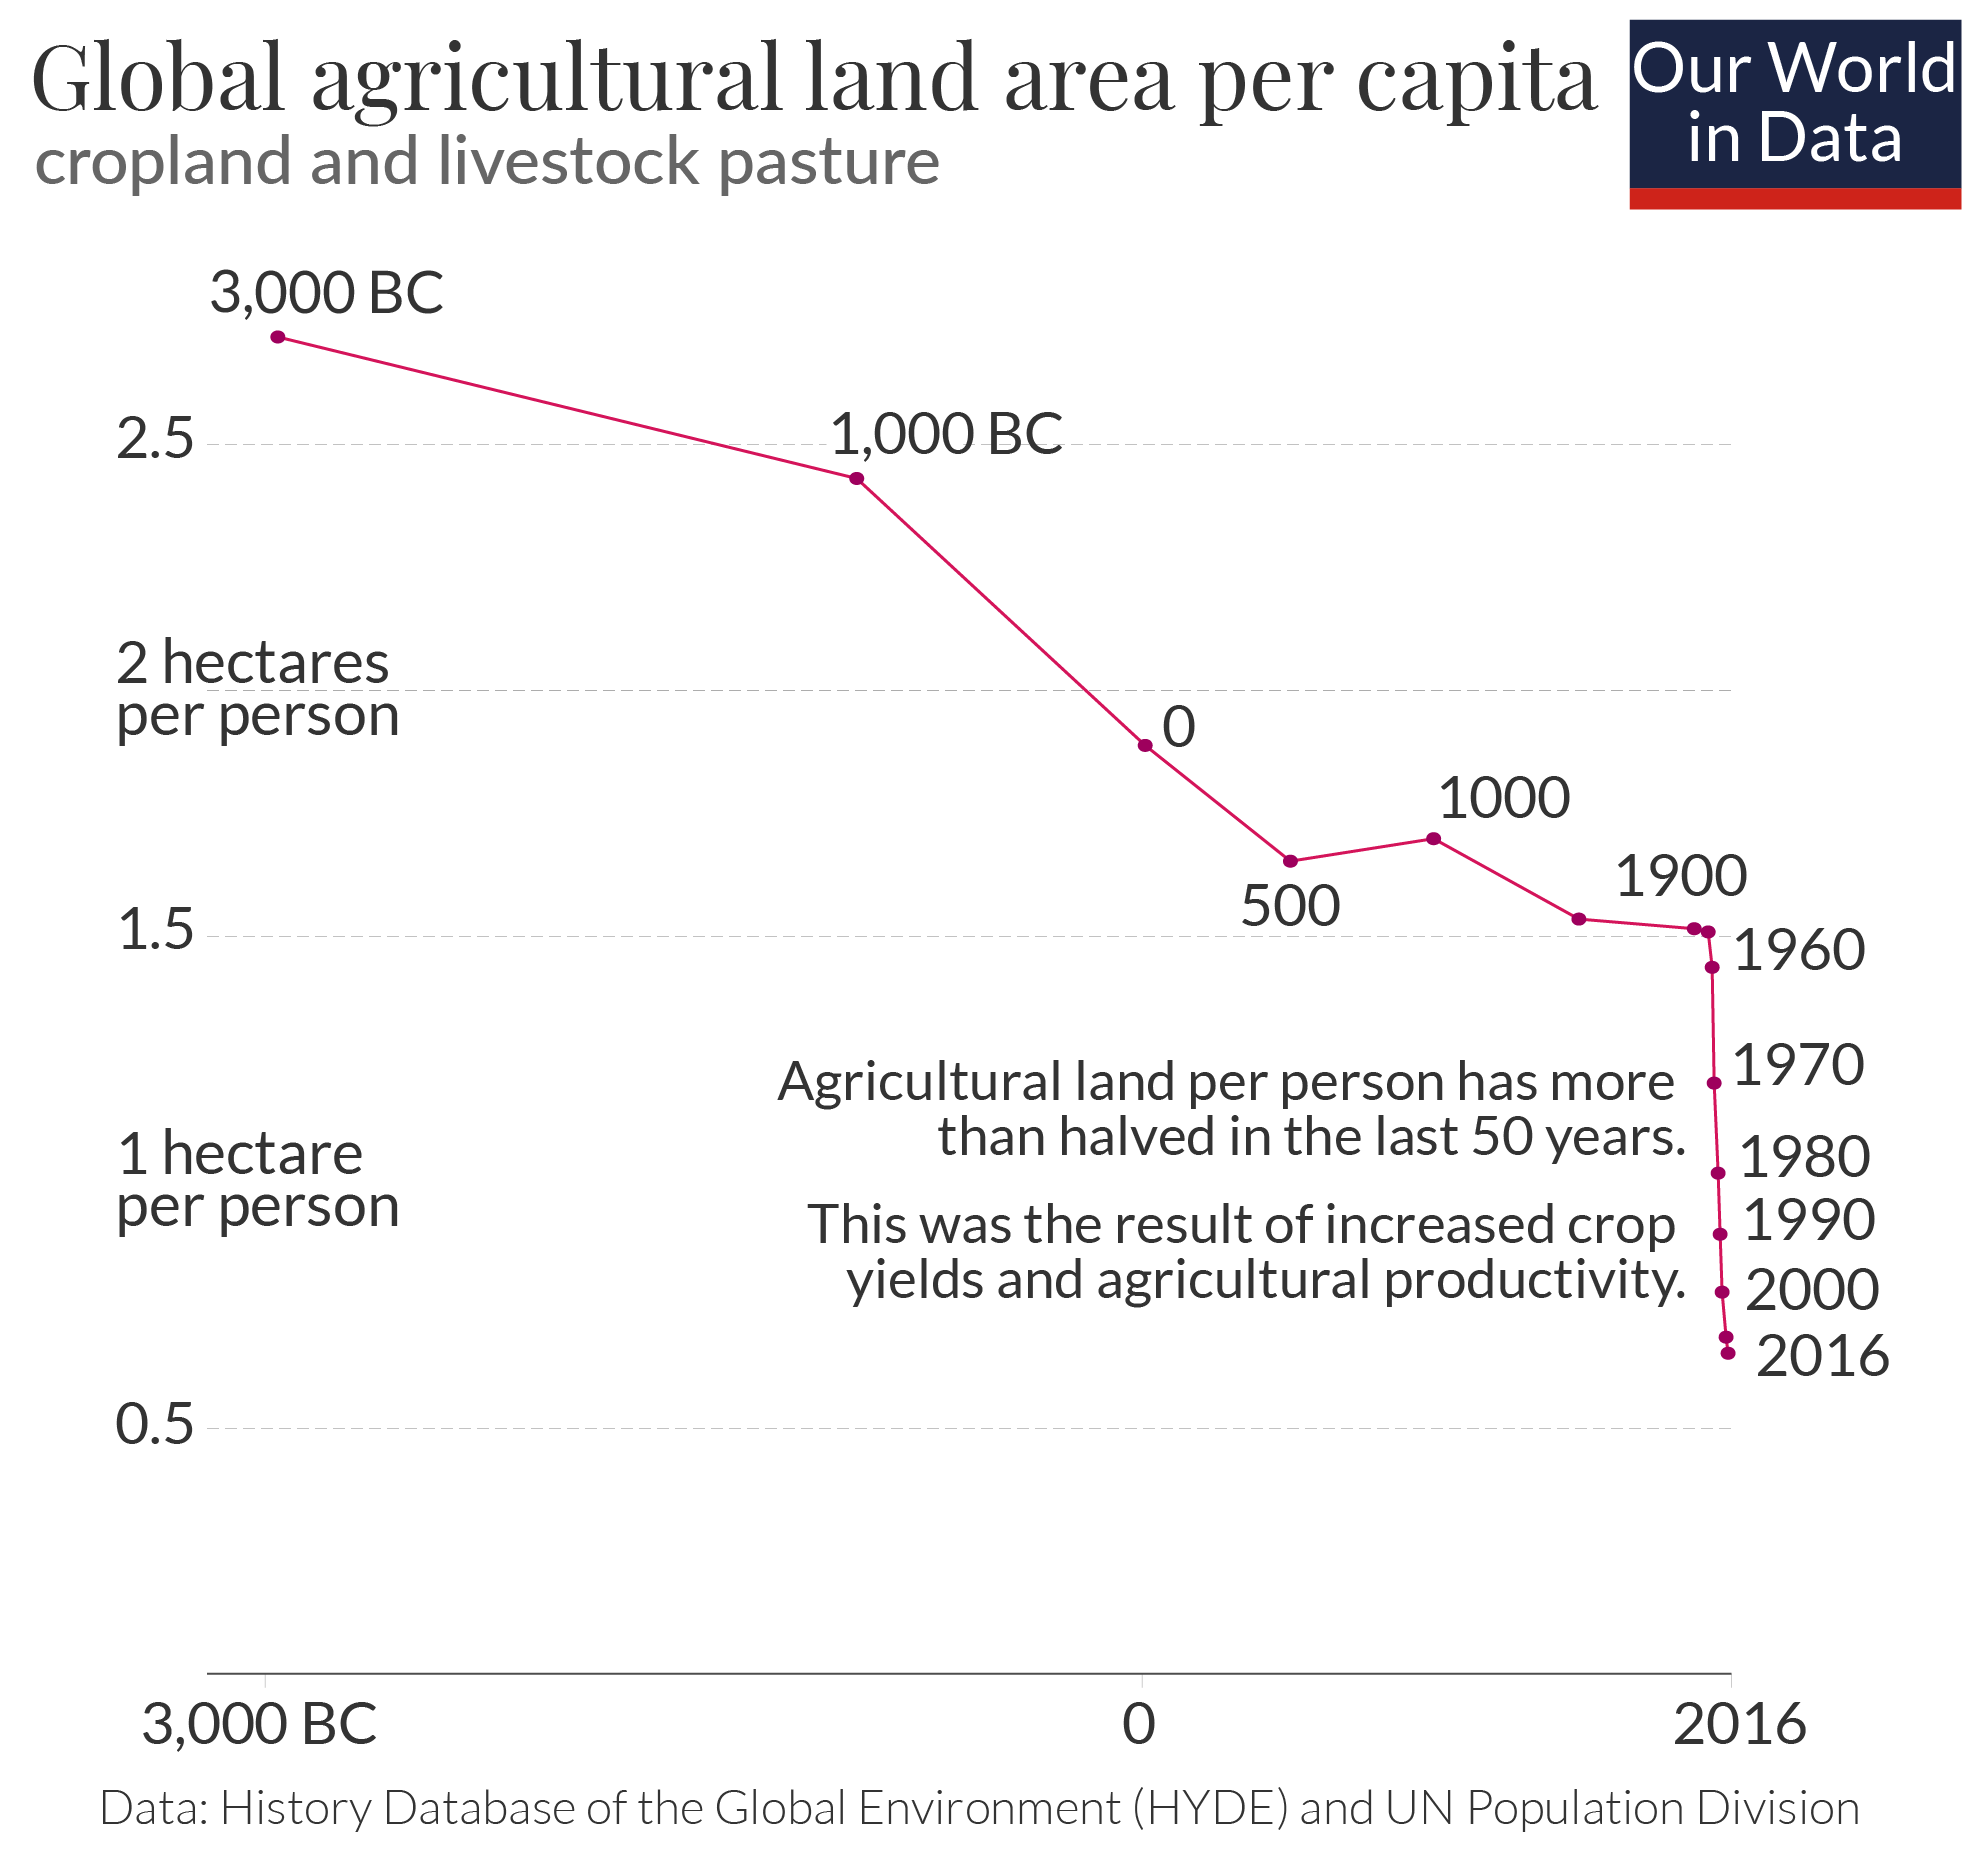 Agricultural land use per capita